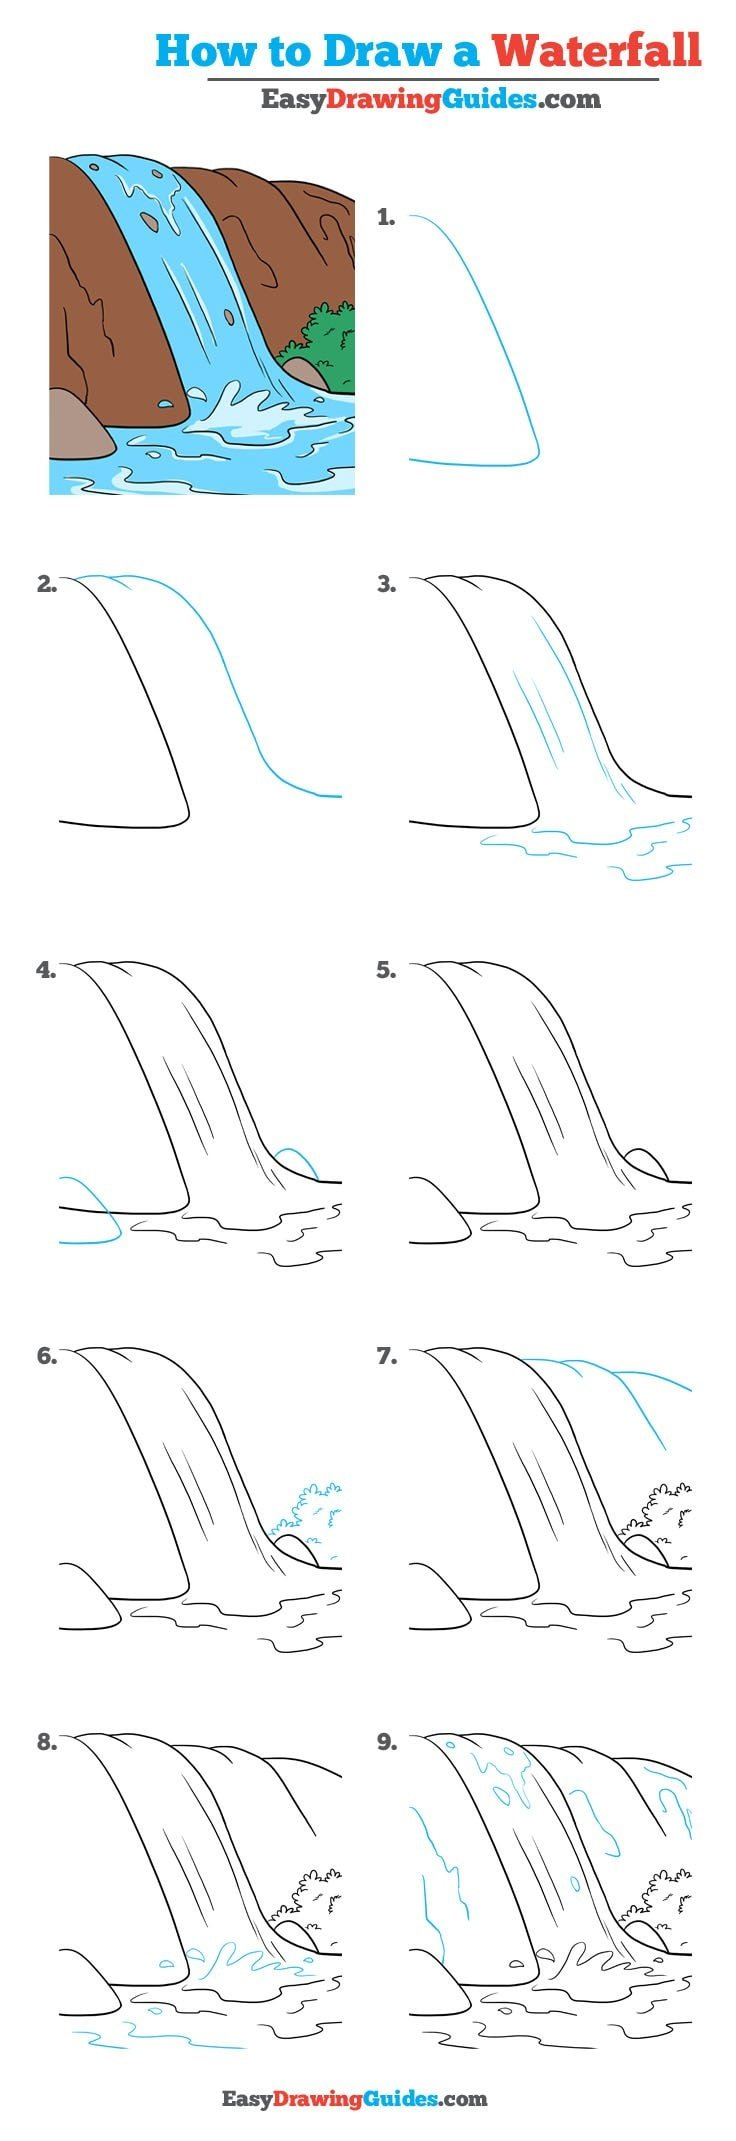 How to Draw Waterfall